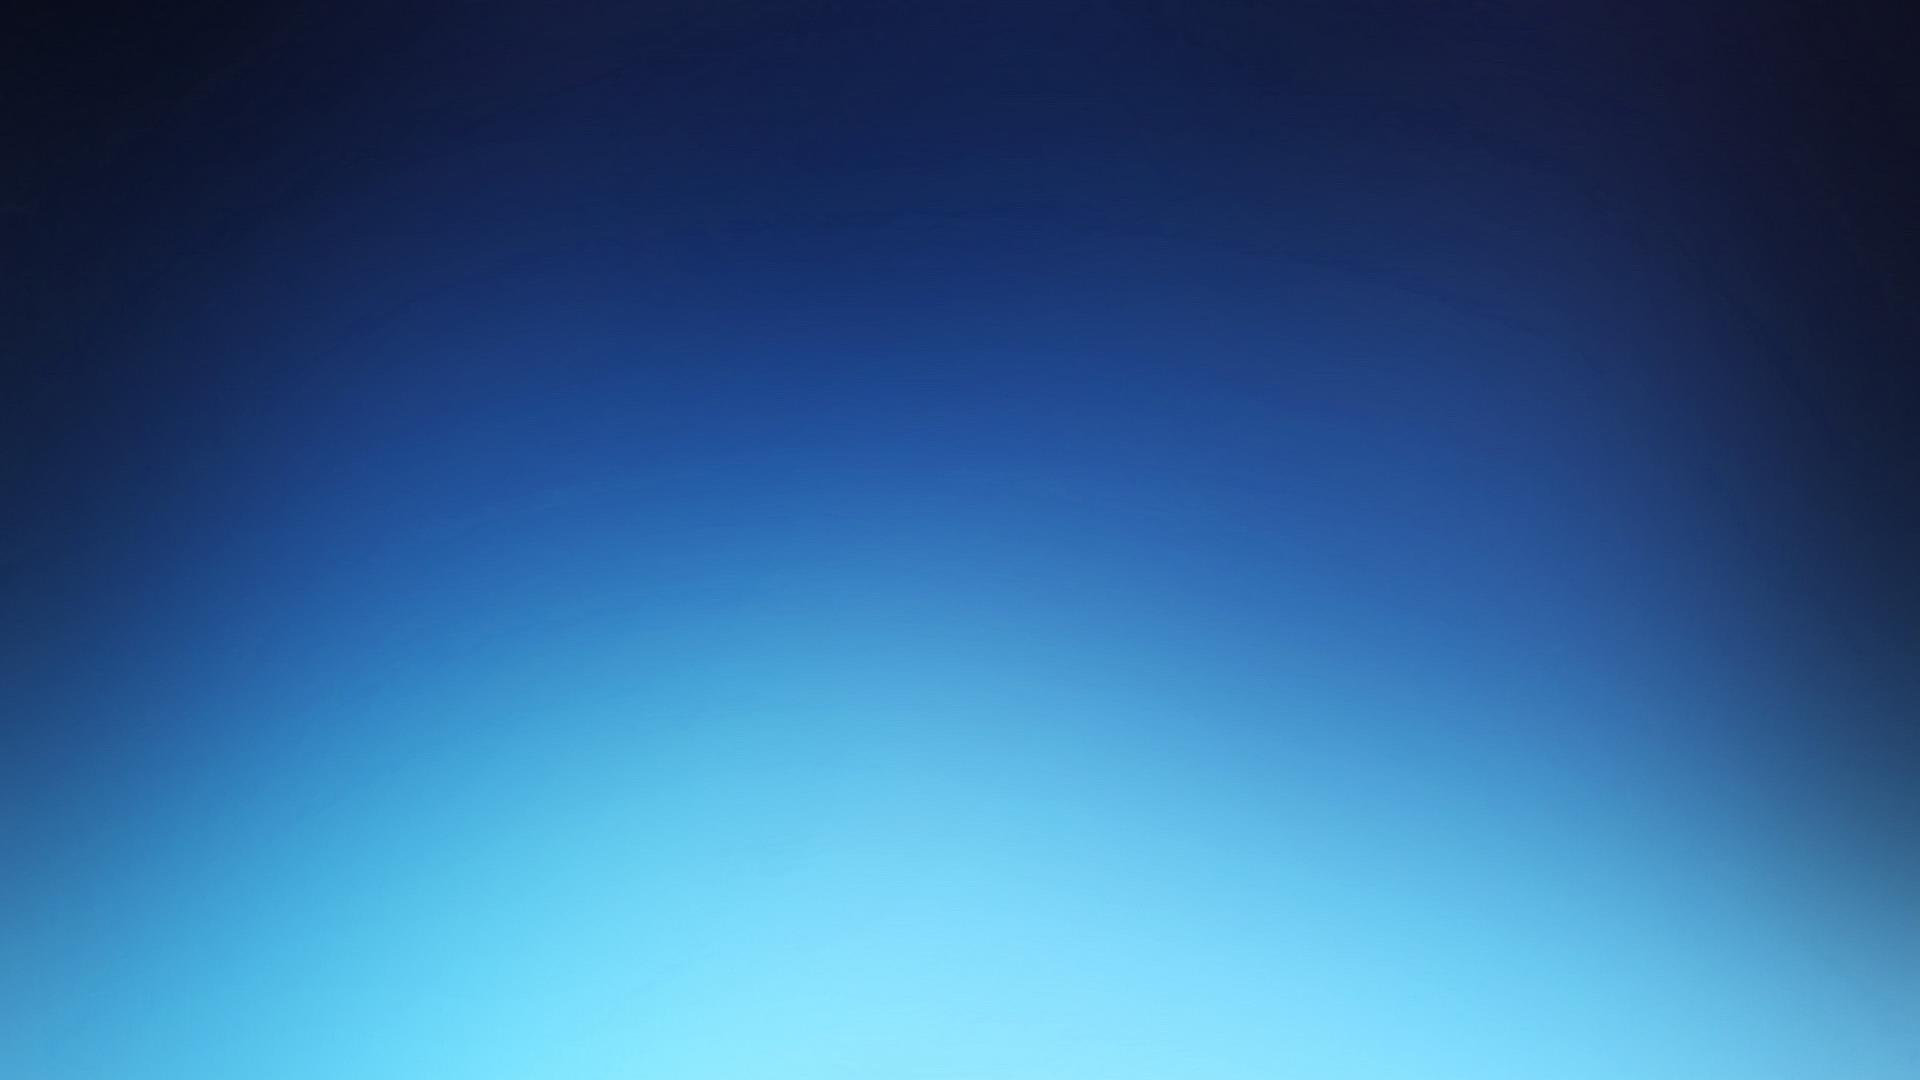 1920x1080 Blue Gradient System Wallpaper For Windwos 8 1920x1080